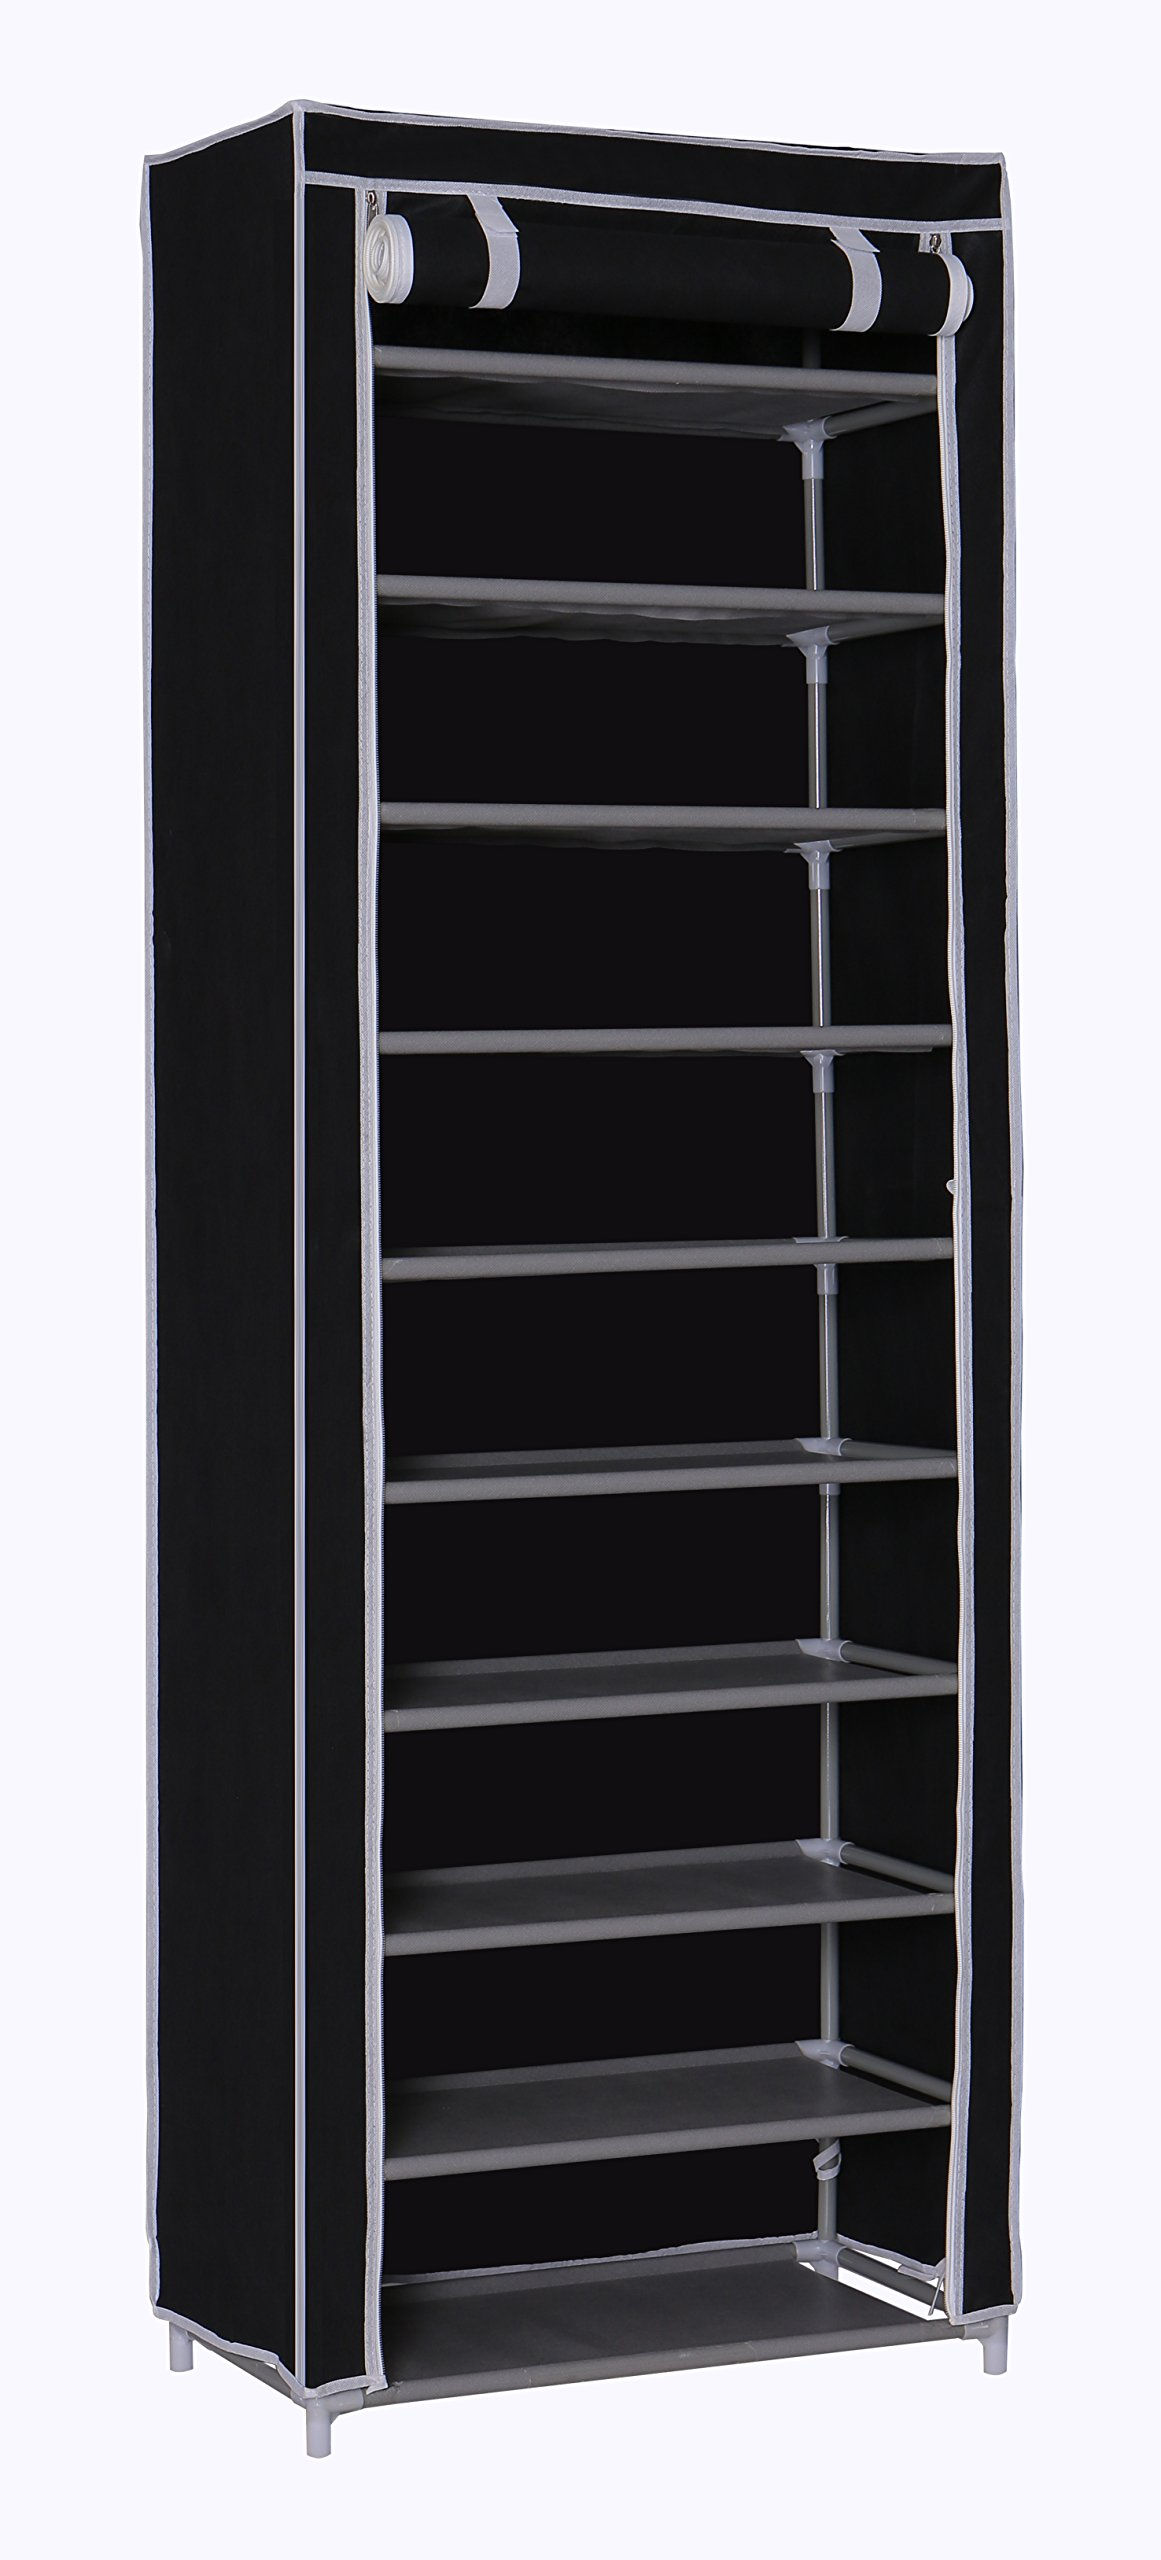 """Homebi 10-Tier Shoe Rack 30 Pairs Shoe Tower Closet Shoes Storage Cabinet Portable Boot Organizer with Dustproof Non-woven Fabric Cover and 10 Durable Shelves,24.2""""W x 12.4"""" D x 68.3""""H (Black)"""